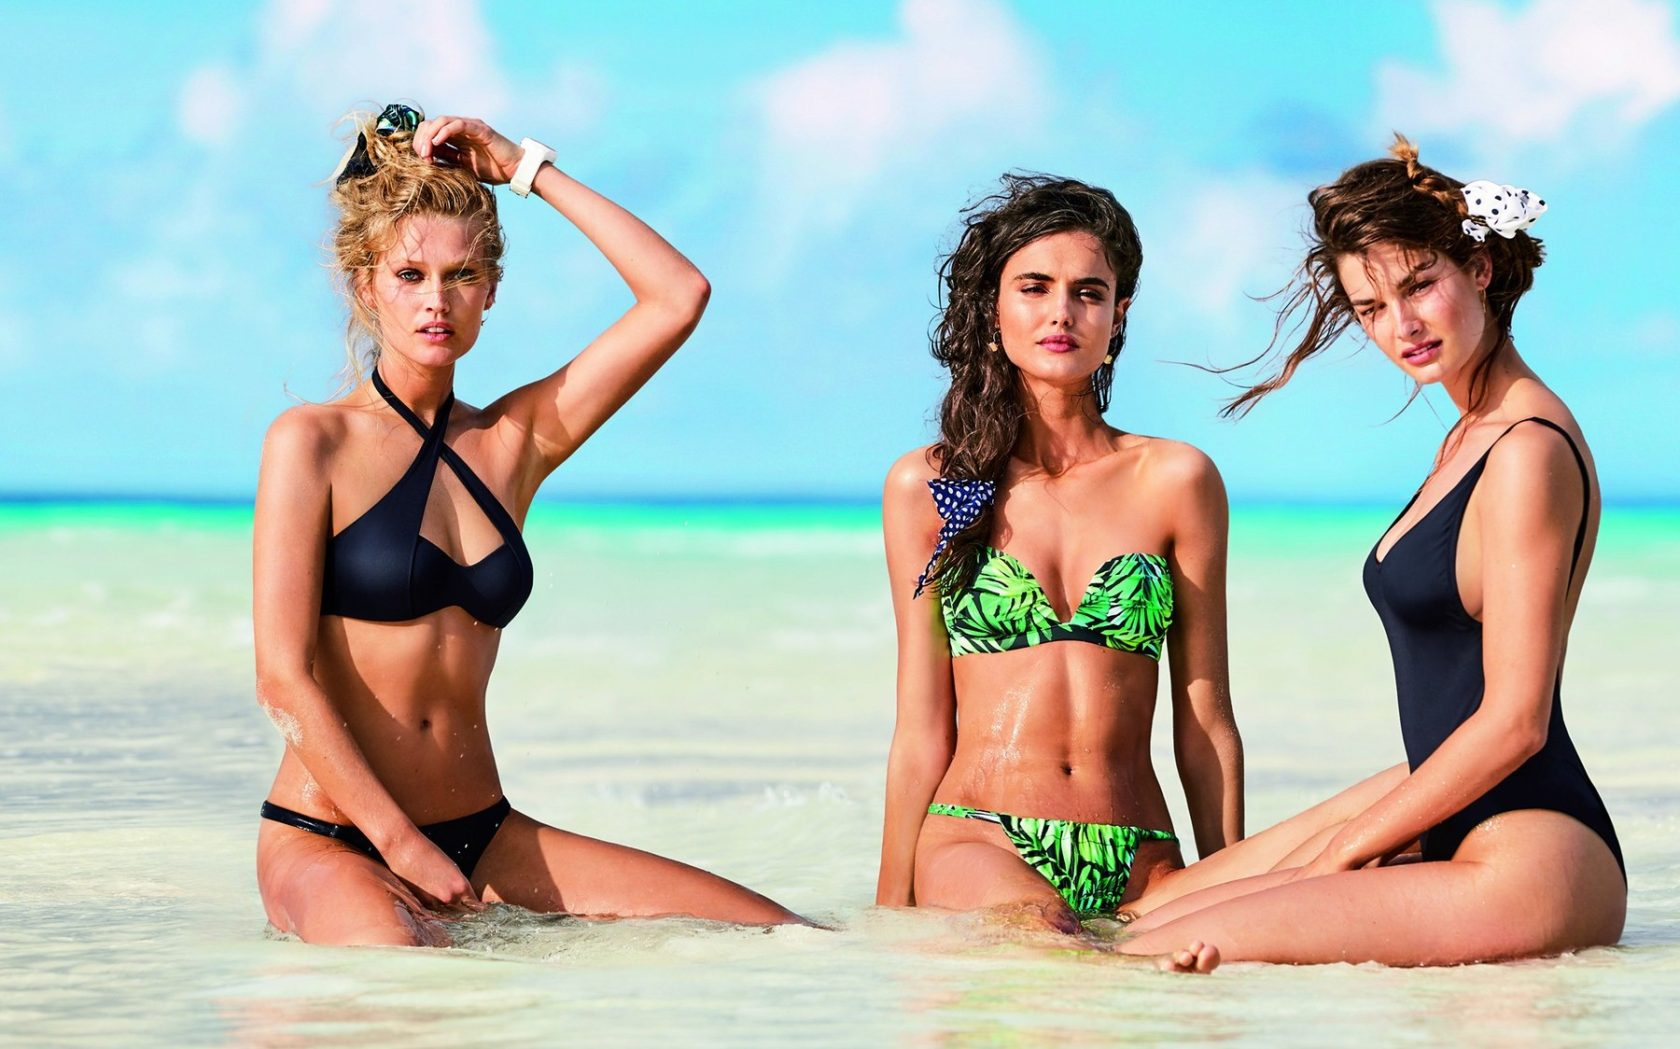 Fashion models Spanish Blanca Padilla and German Toni Garrn star in Calzedonia Spring Summer 2017 swimwear collection., Image: 329529116, License: Rights-managed, Restrictions: EDITORIAL USE ONLY, Model Release: no, Credit line: Profimedia, Balawa Pics